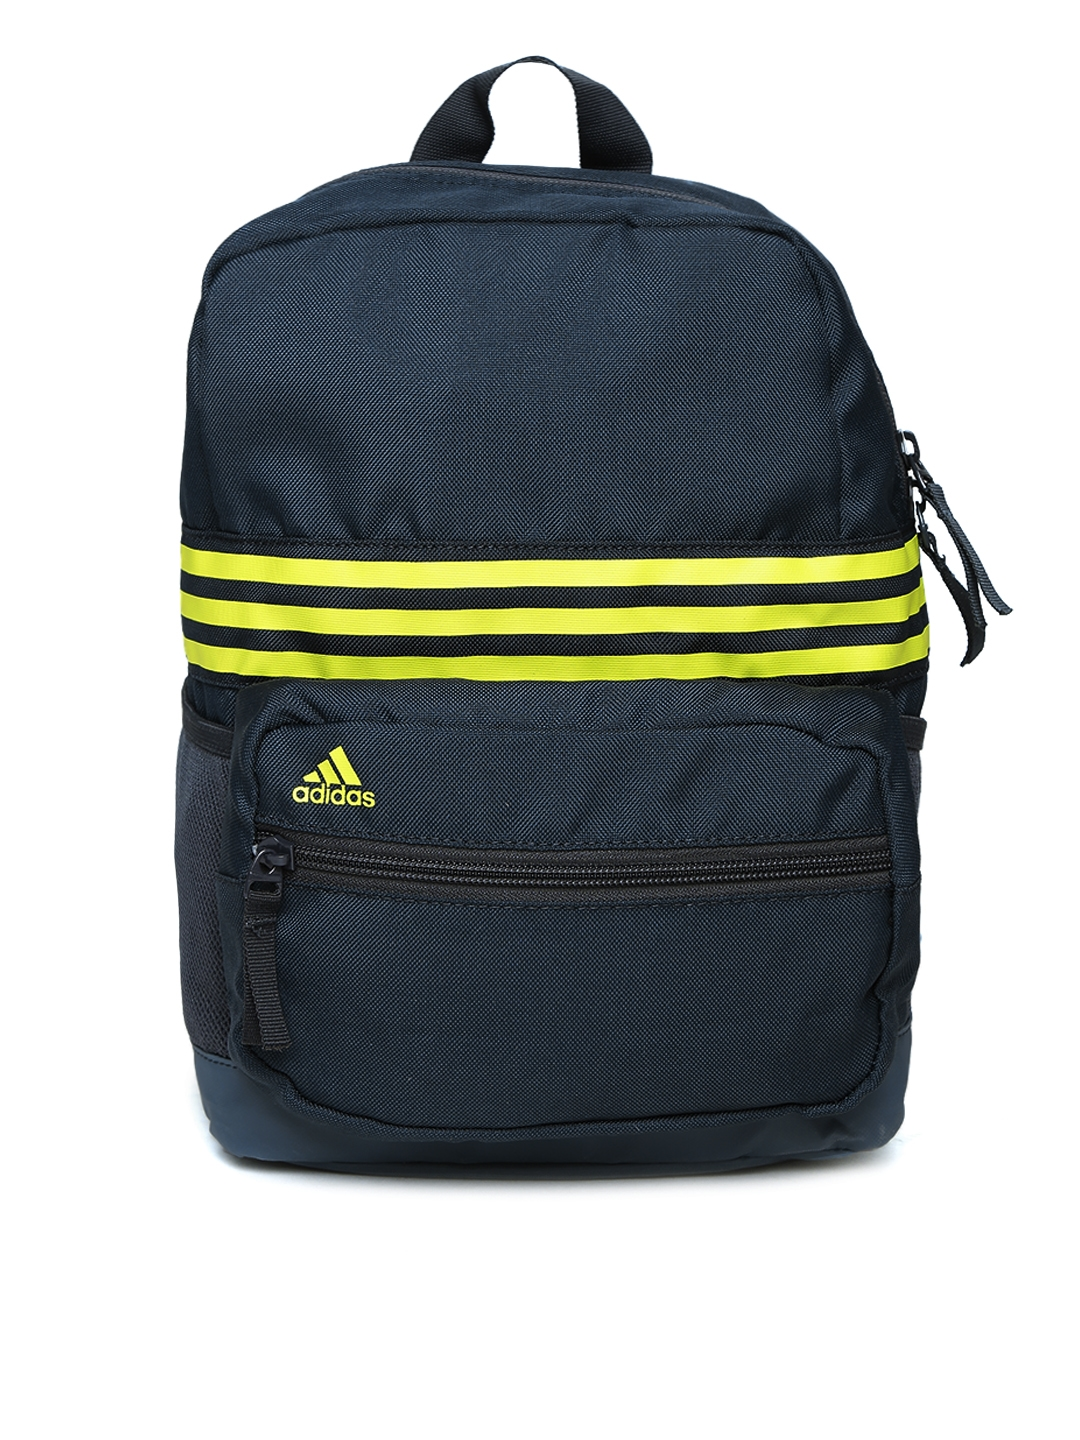 a67ef55c4bda Buy Adidas Backpacks Online- Fenix Toulouse Handball